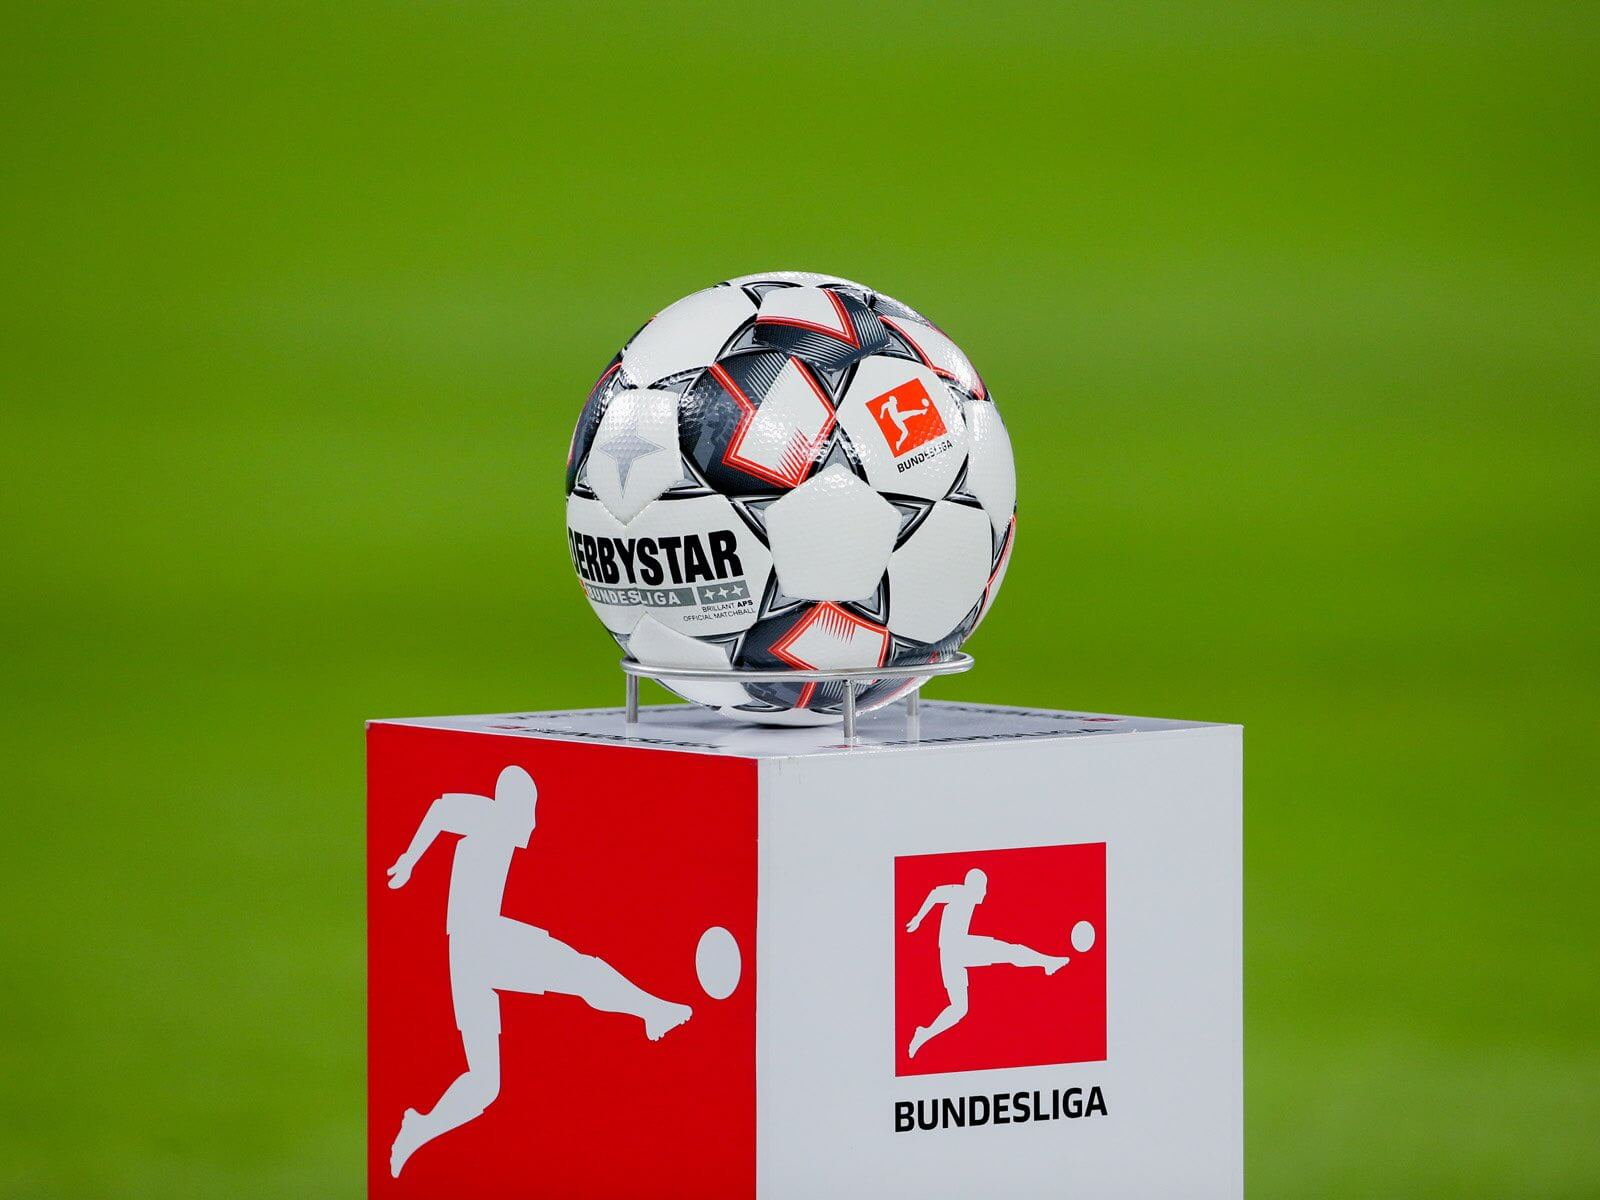 Borussia Monchengladbach vs Bayer 04 Leverkusen Prediction 23/05/2020